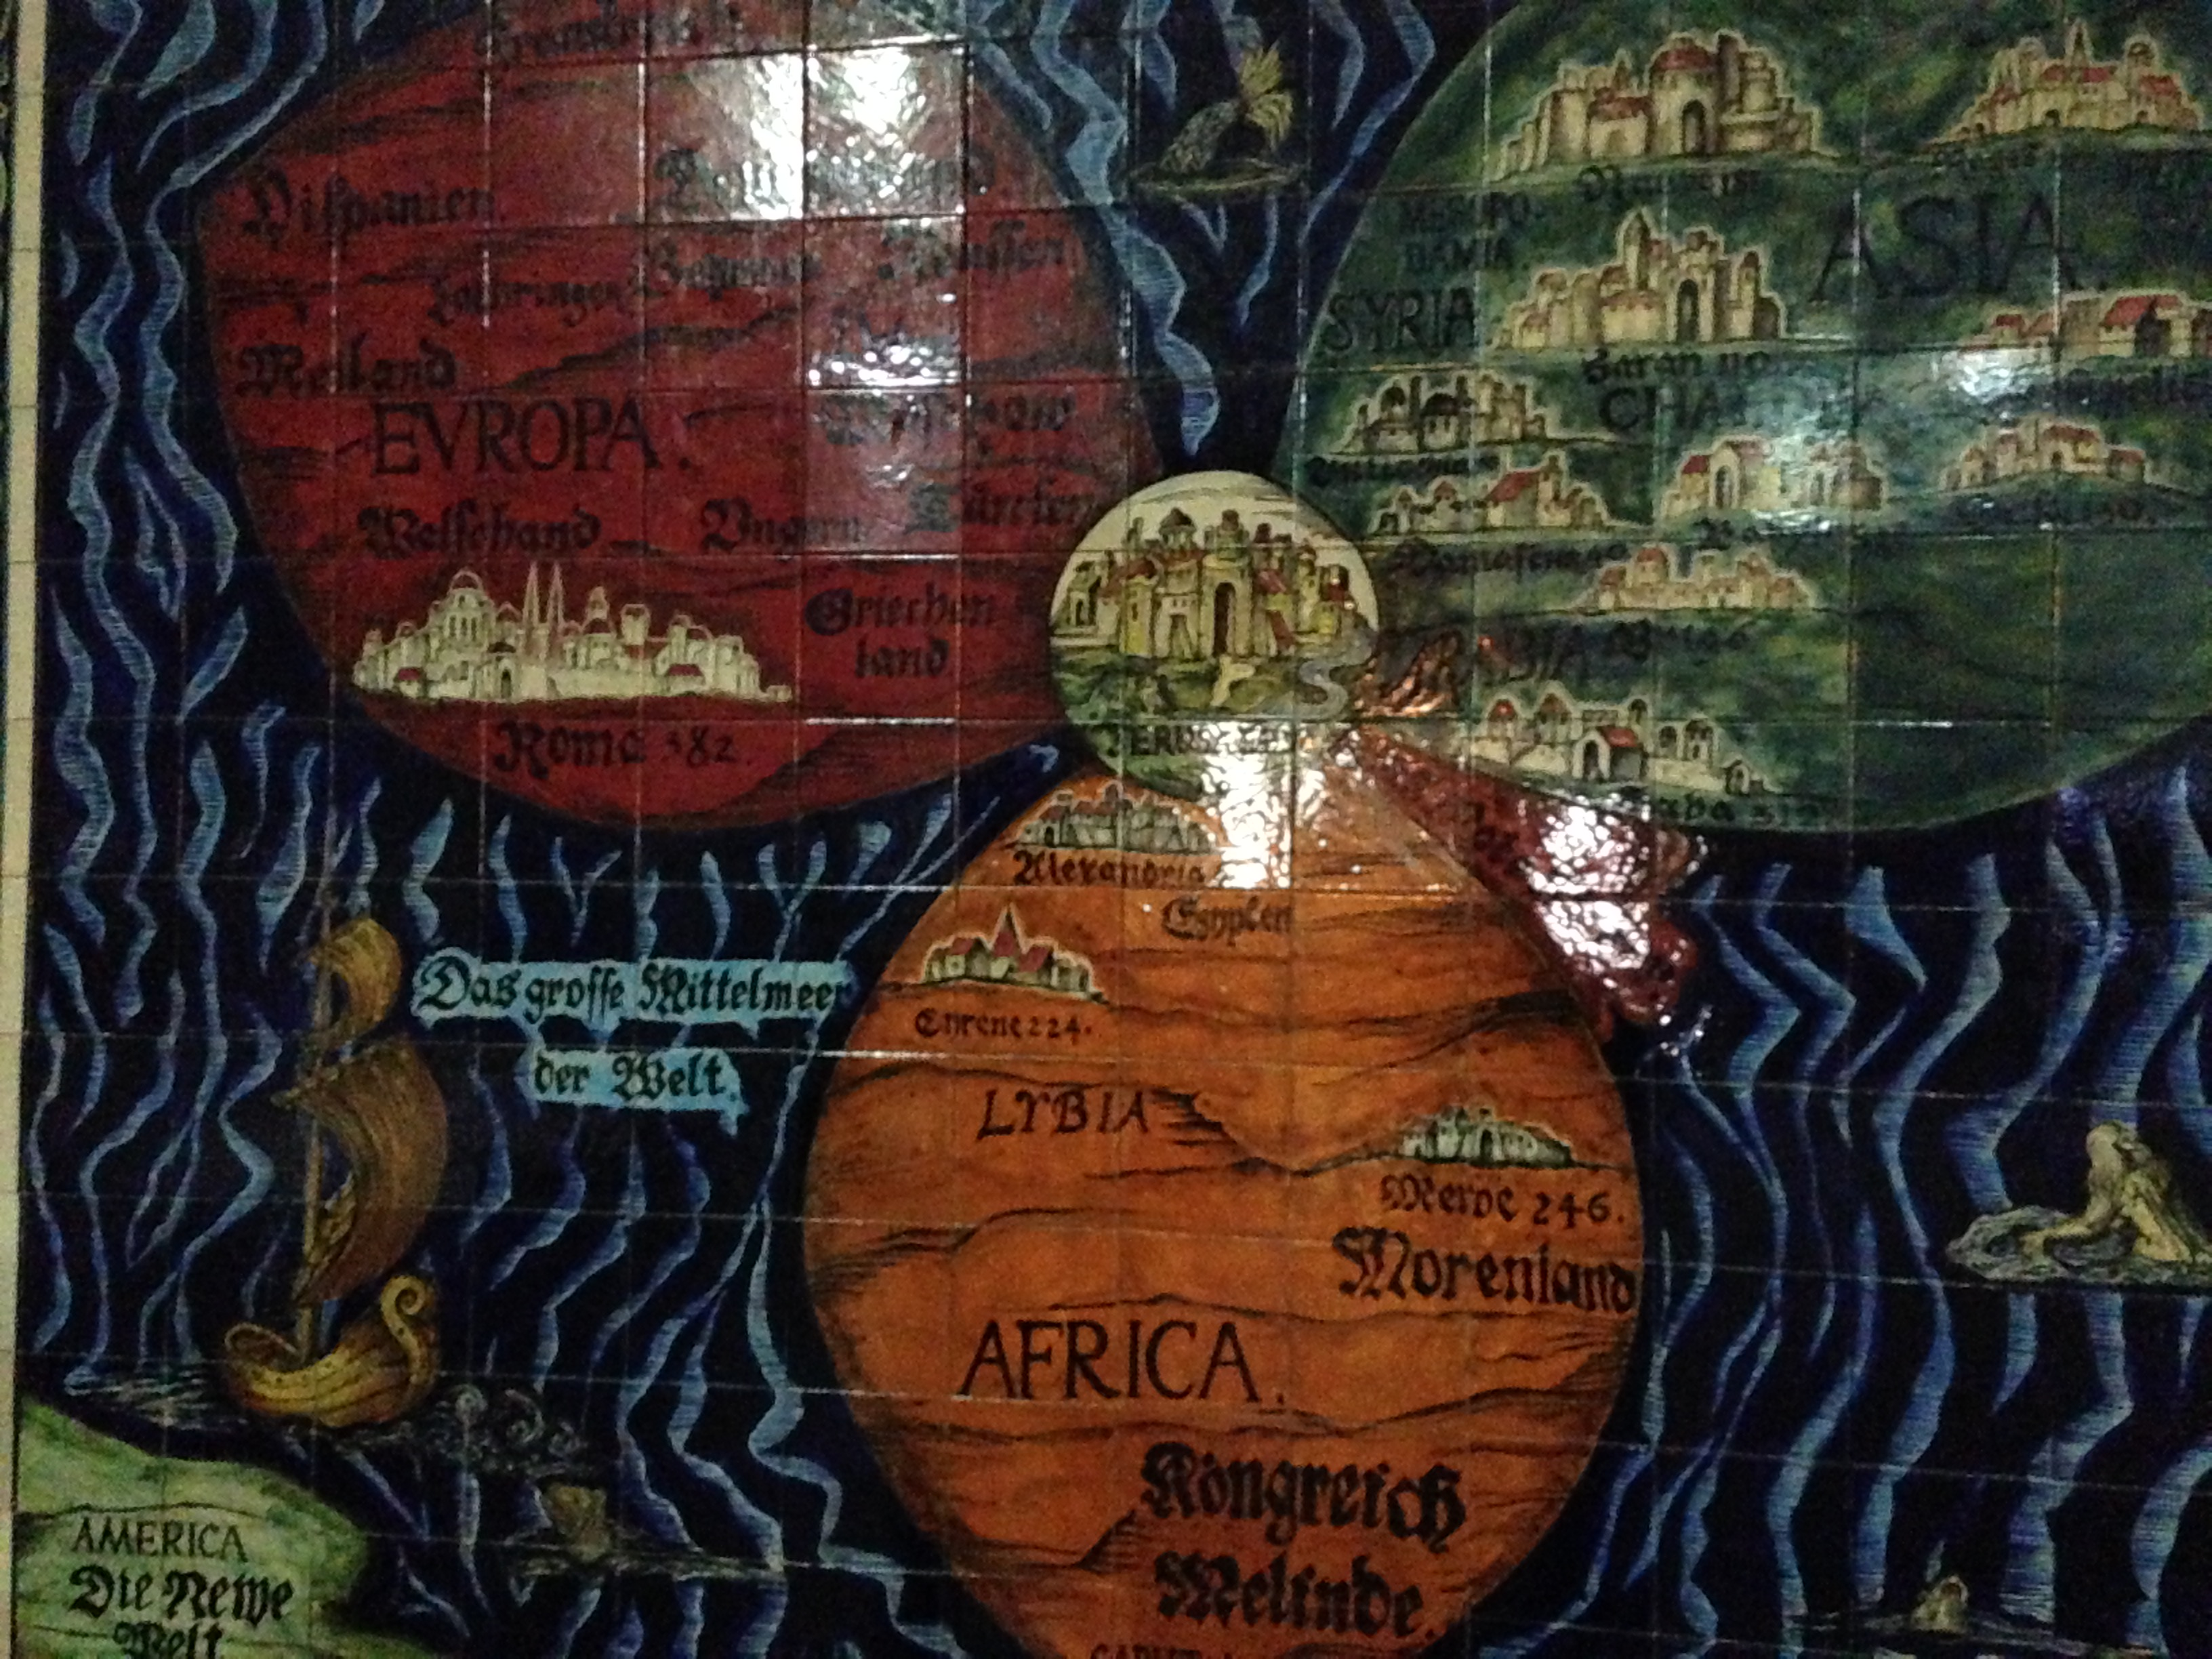 Waffle bar treasure your being the mural shows a map of jerusalem as the center of the world and its based on an actual map from the 1500s depicting the belief of the medieval time gumiabroncs Image collections